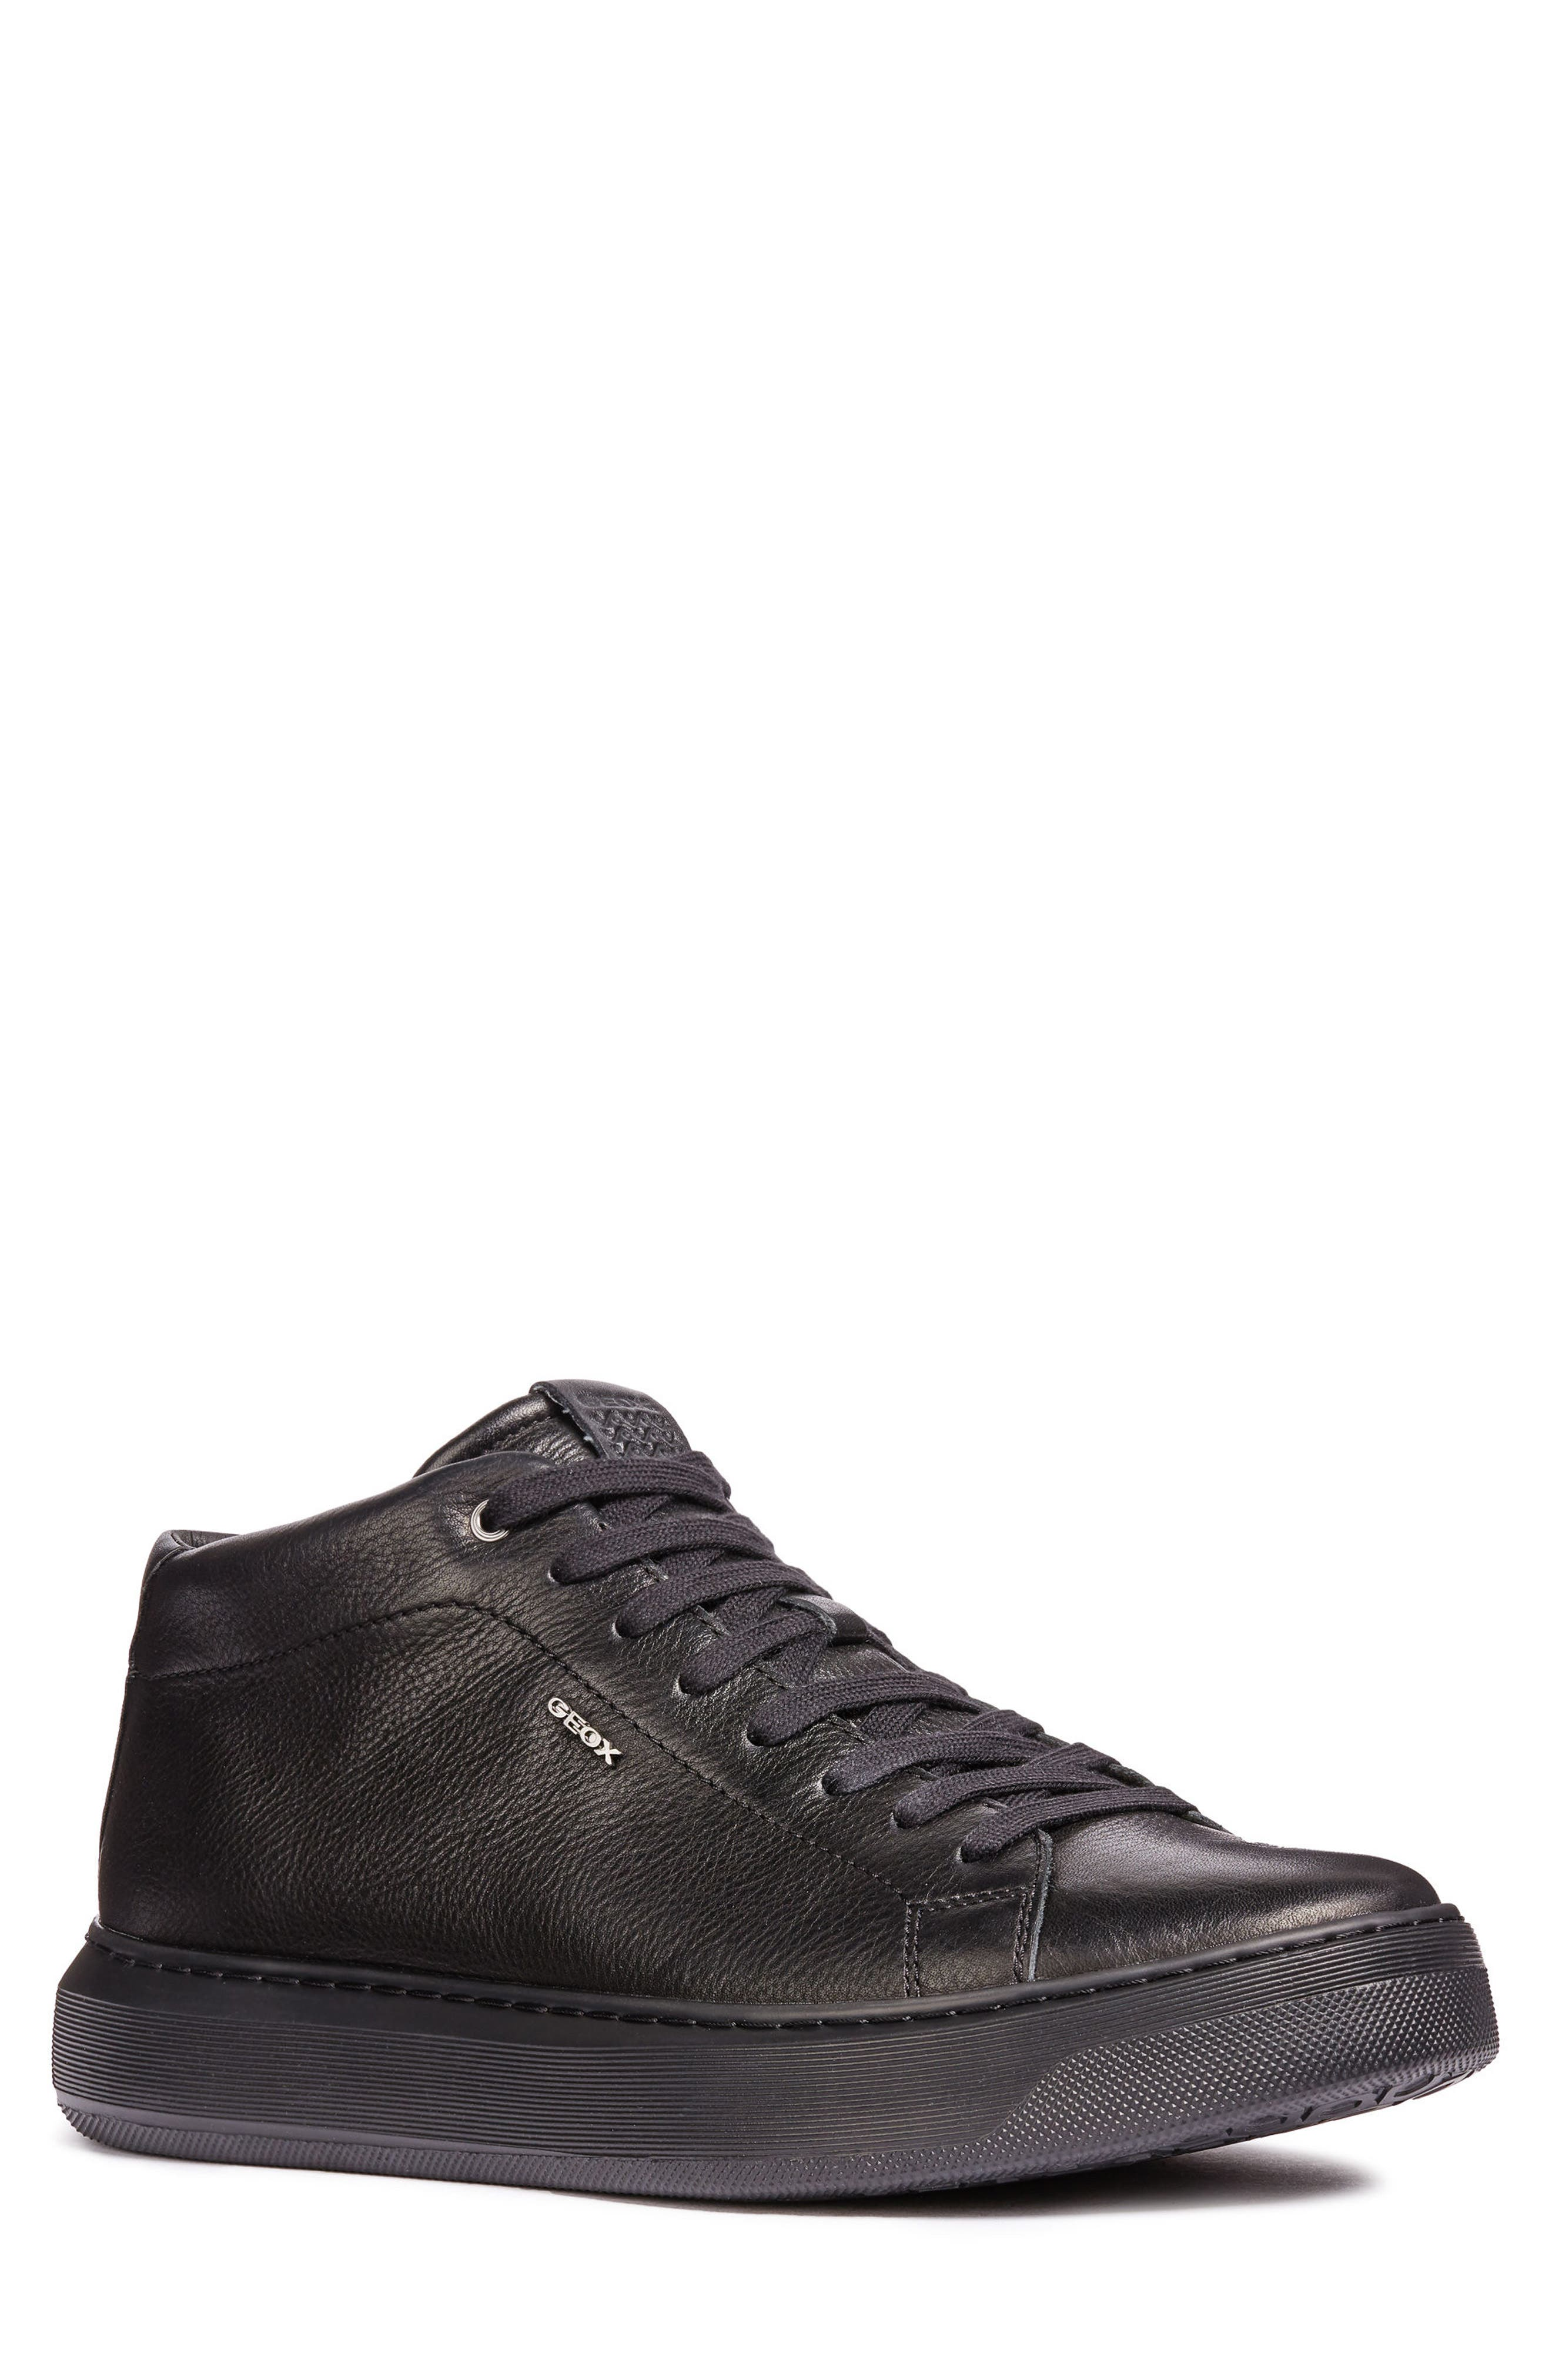 Deiven 1 High Top Sneaker,                         Main,                         color, BLACK LEATHER